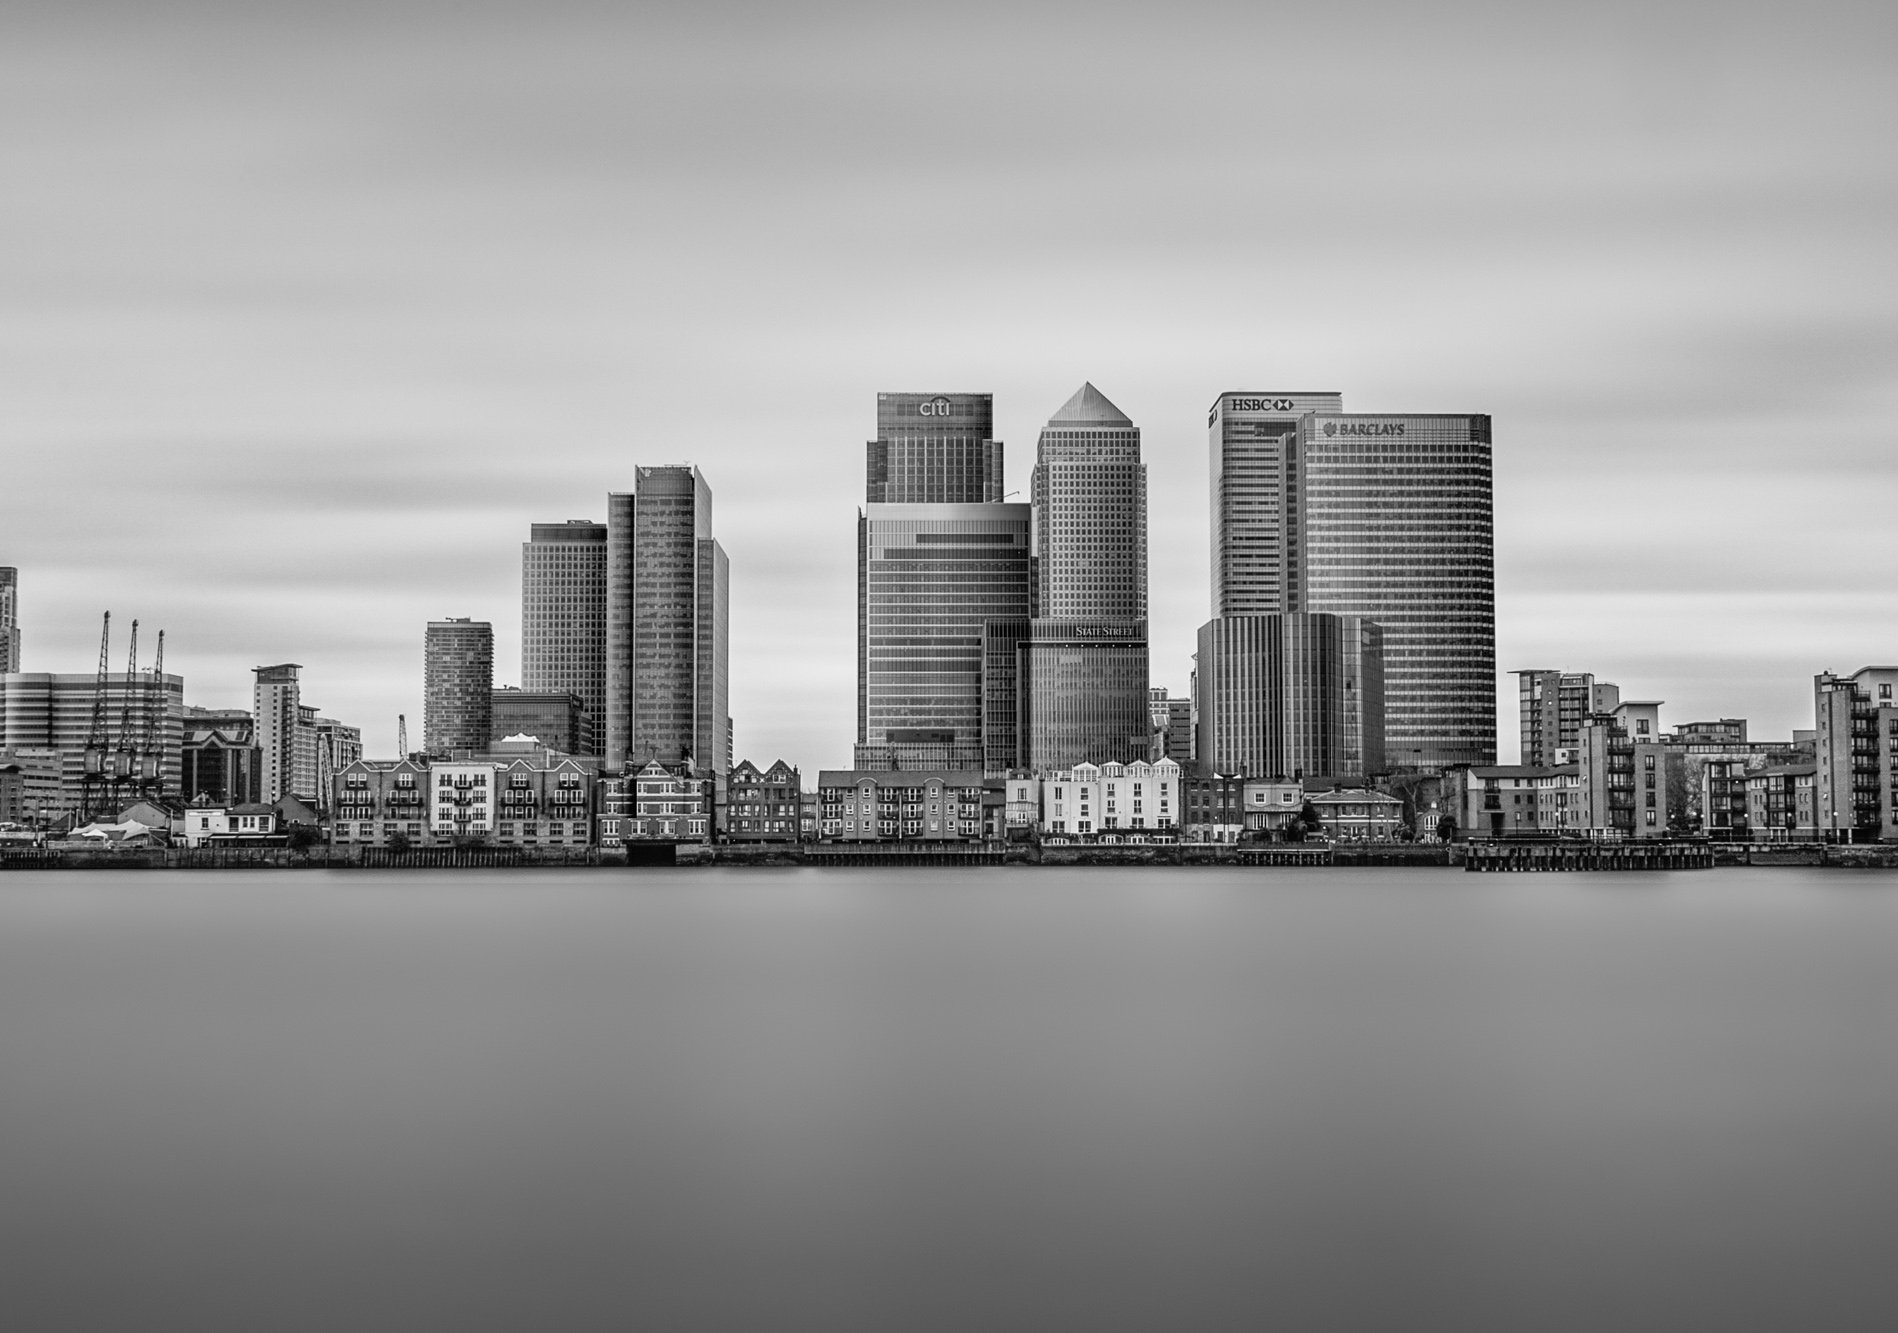 long exposure photograph of architecture and buildings of Canary Wharf and London Docklands